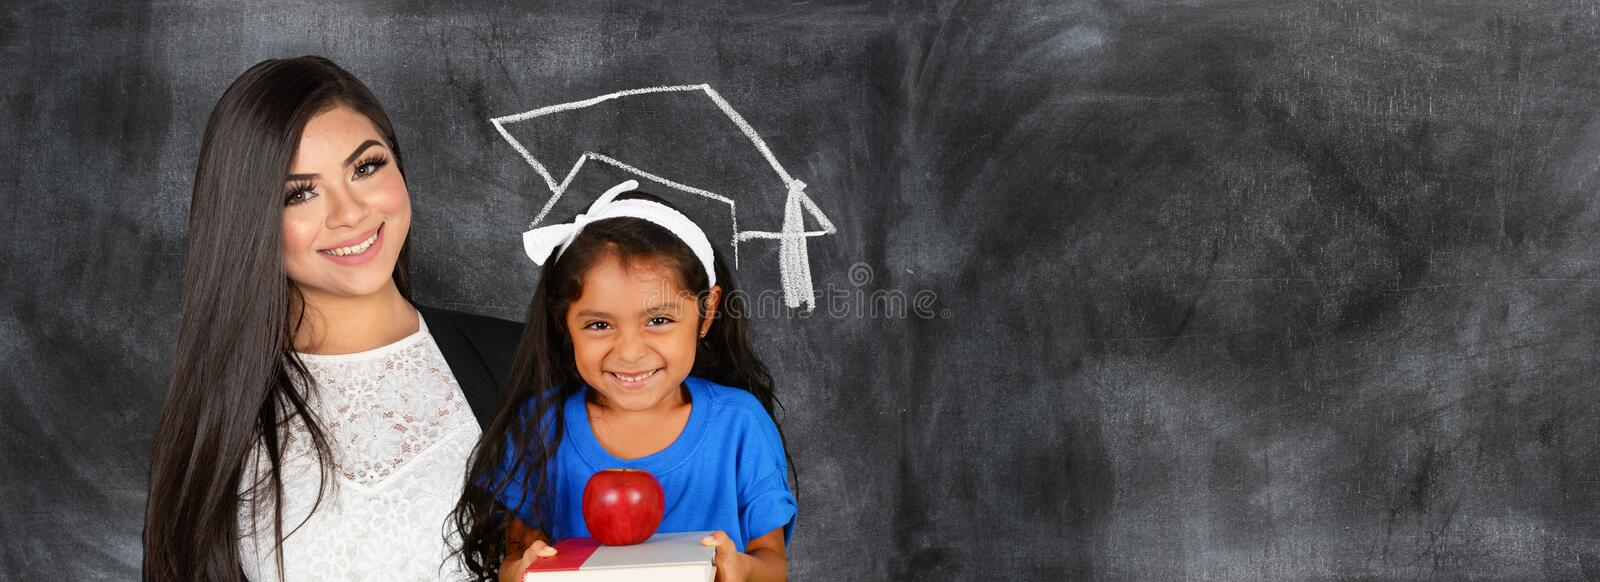 Hispanic Teacher With A Student At School royalty free stock photography